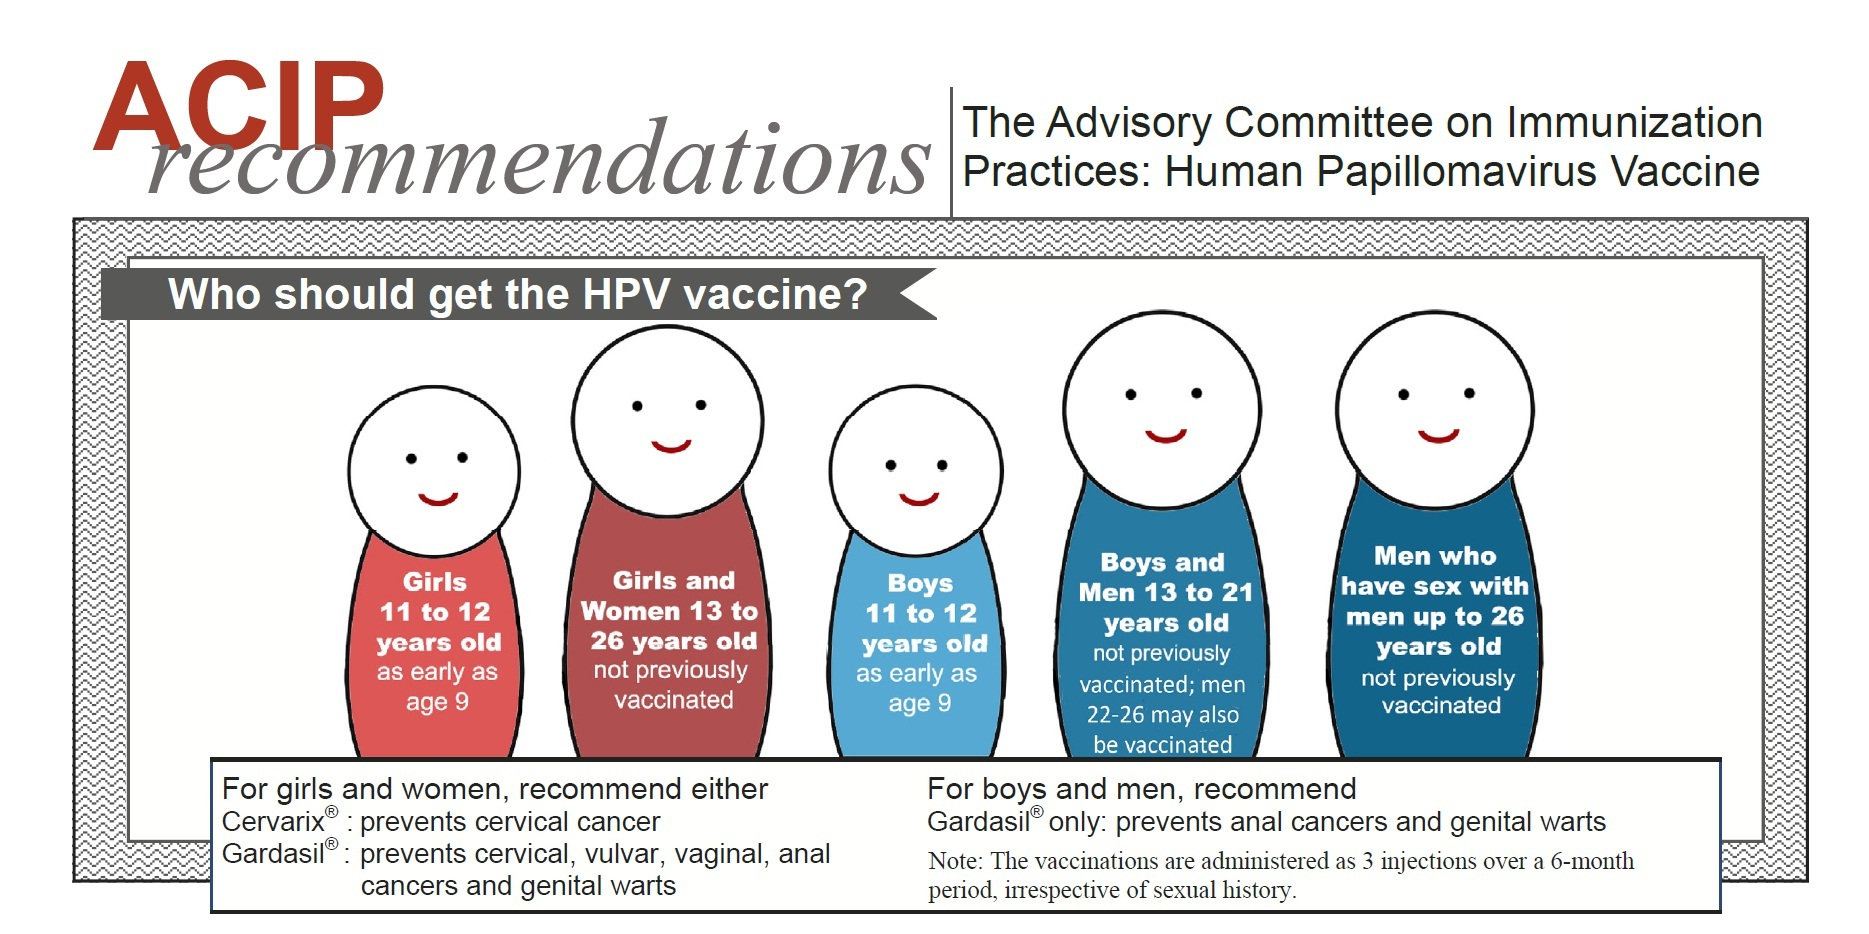 Where can i find research articles about the hpv vaccine?